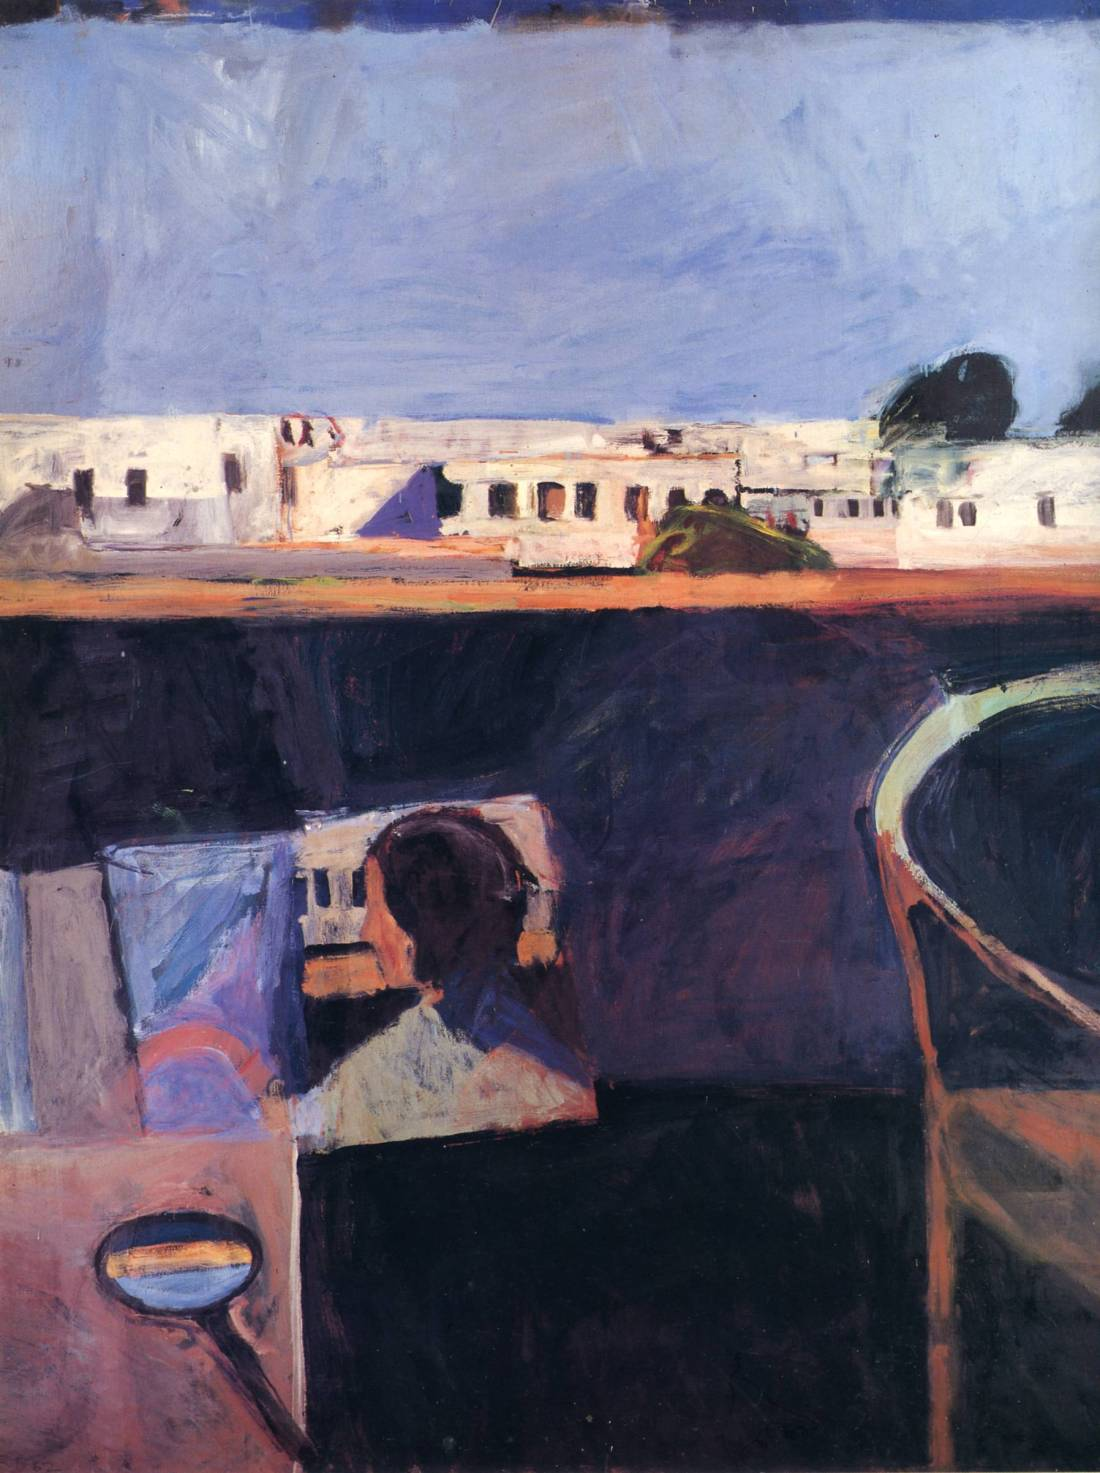 Richard Diebenkorn, Interior with View of Buildings, 1962. Collection of the Cincinnati Art Museum.